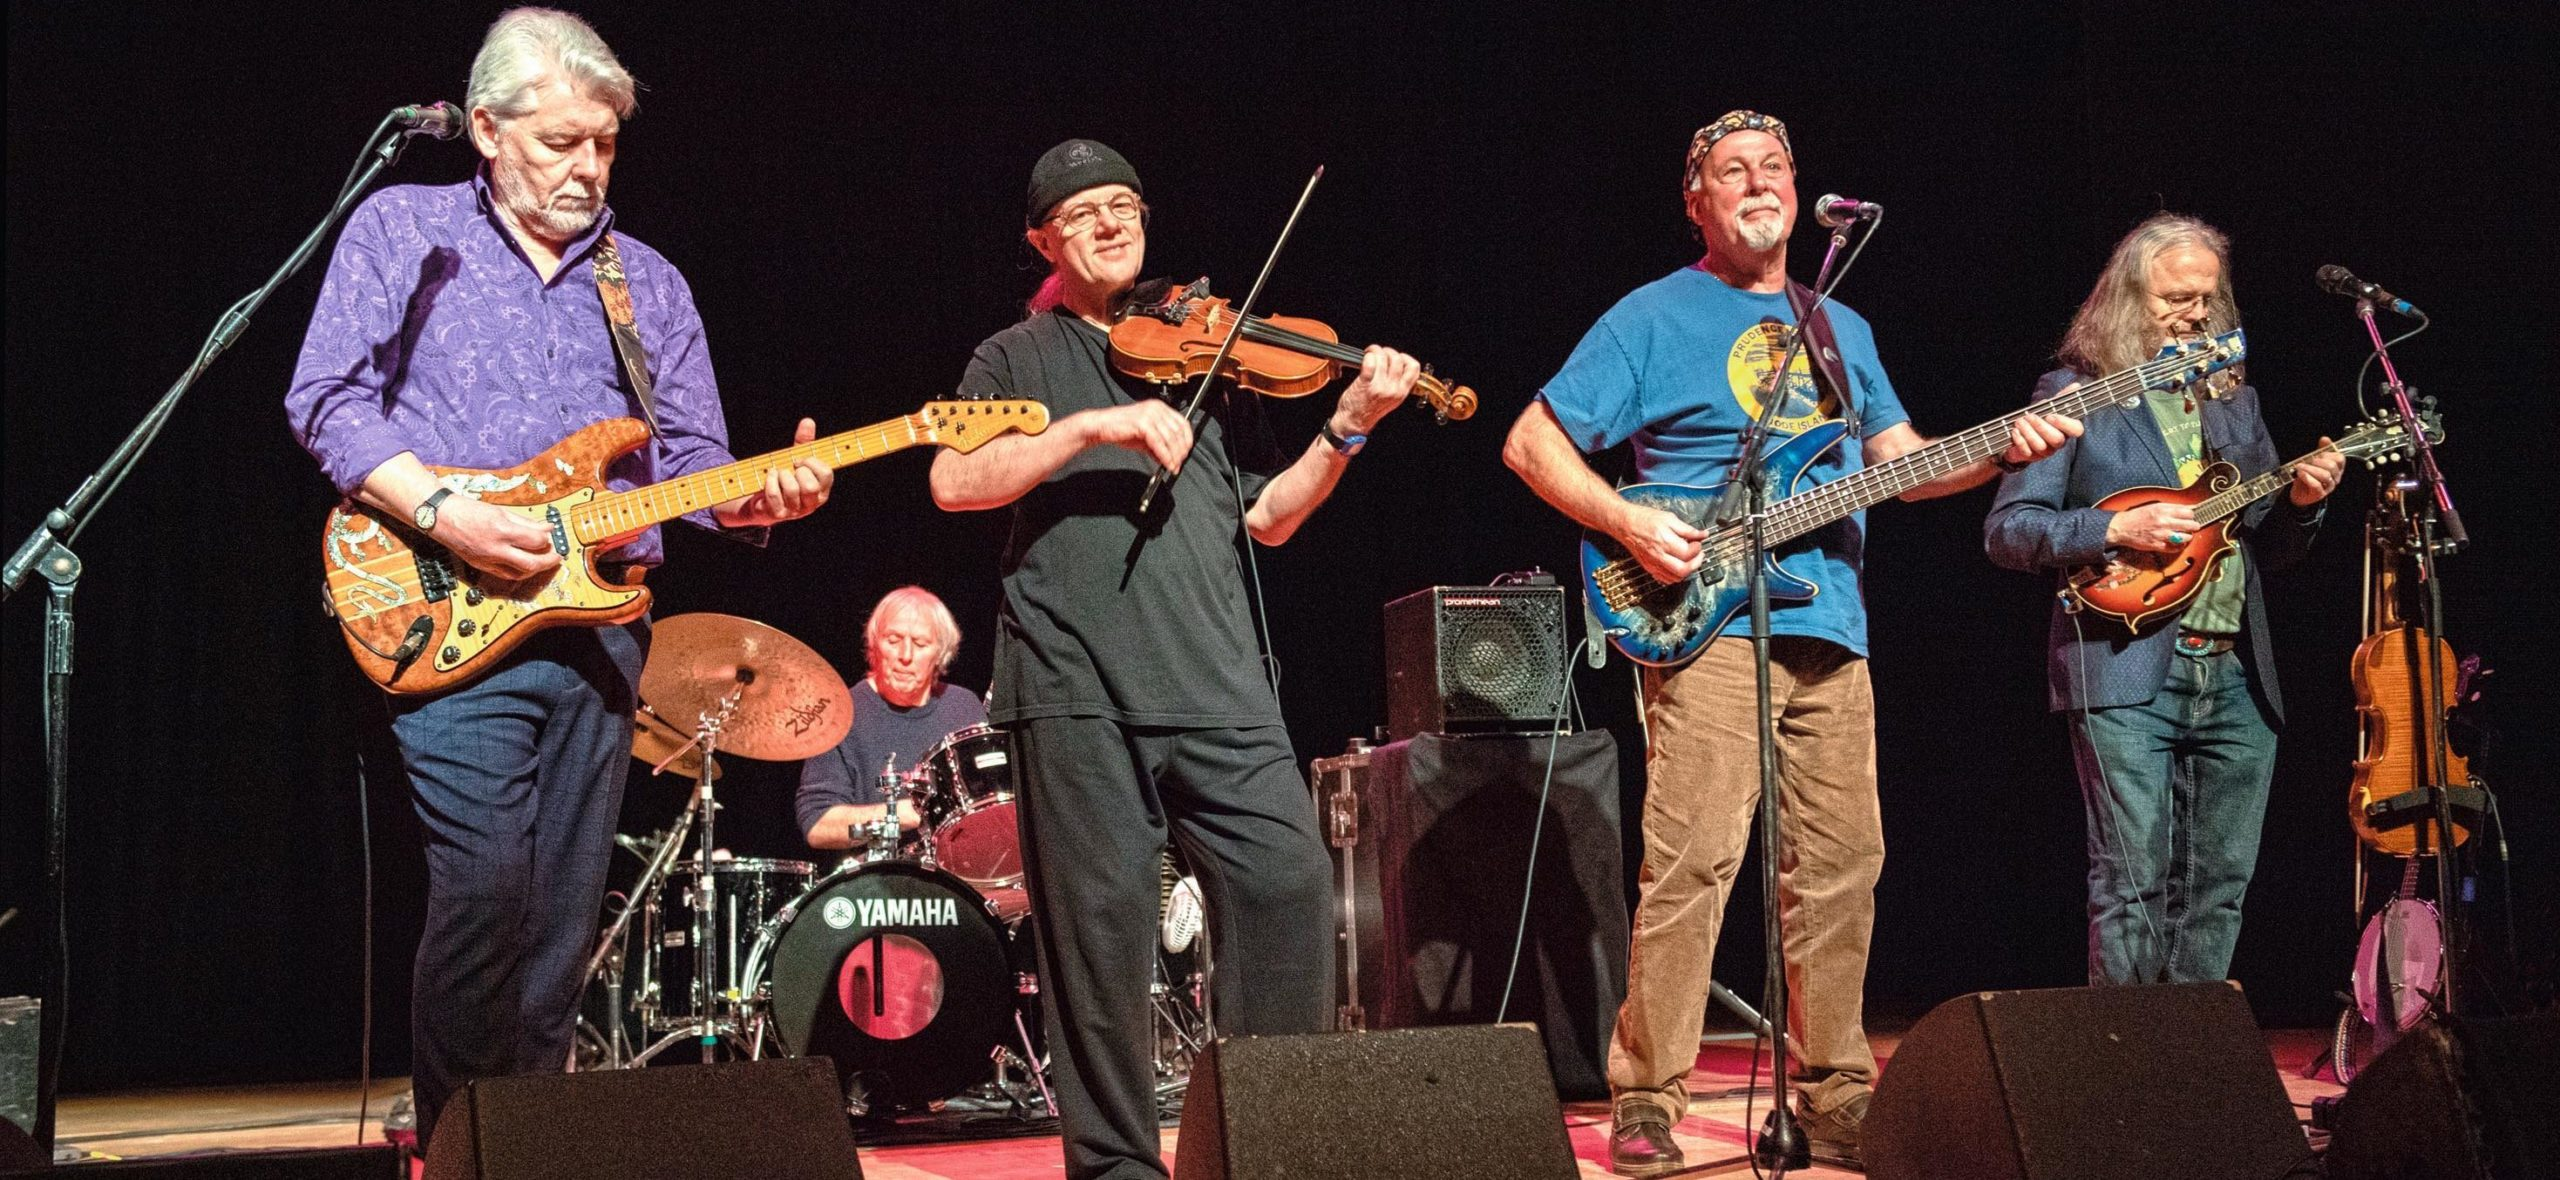 Fairport Convention on stage at The Stables, Milton Keynes, UK on 13 February 2019. Photo by David Jackson.